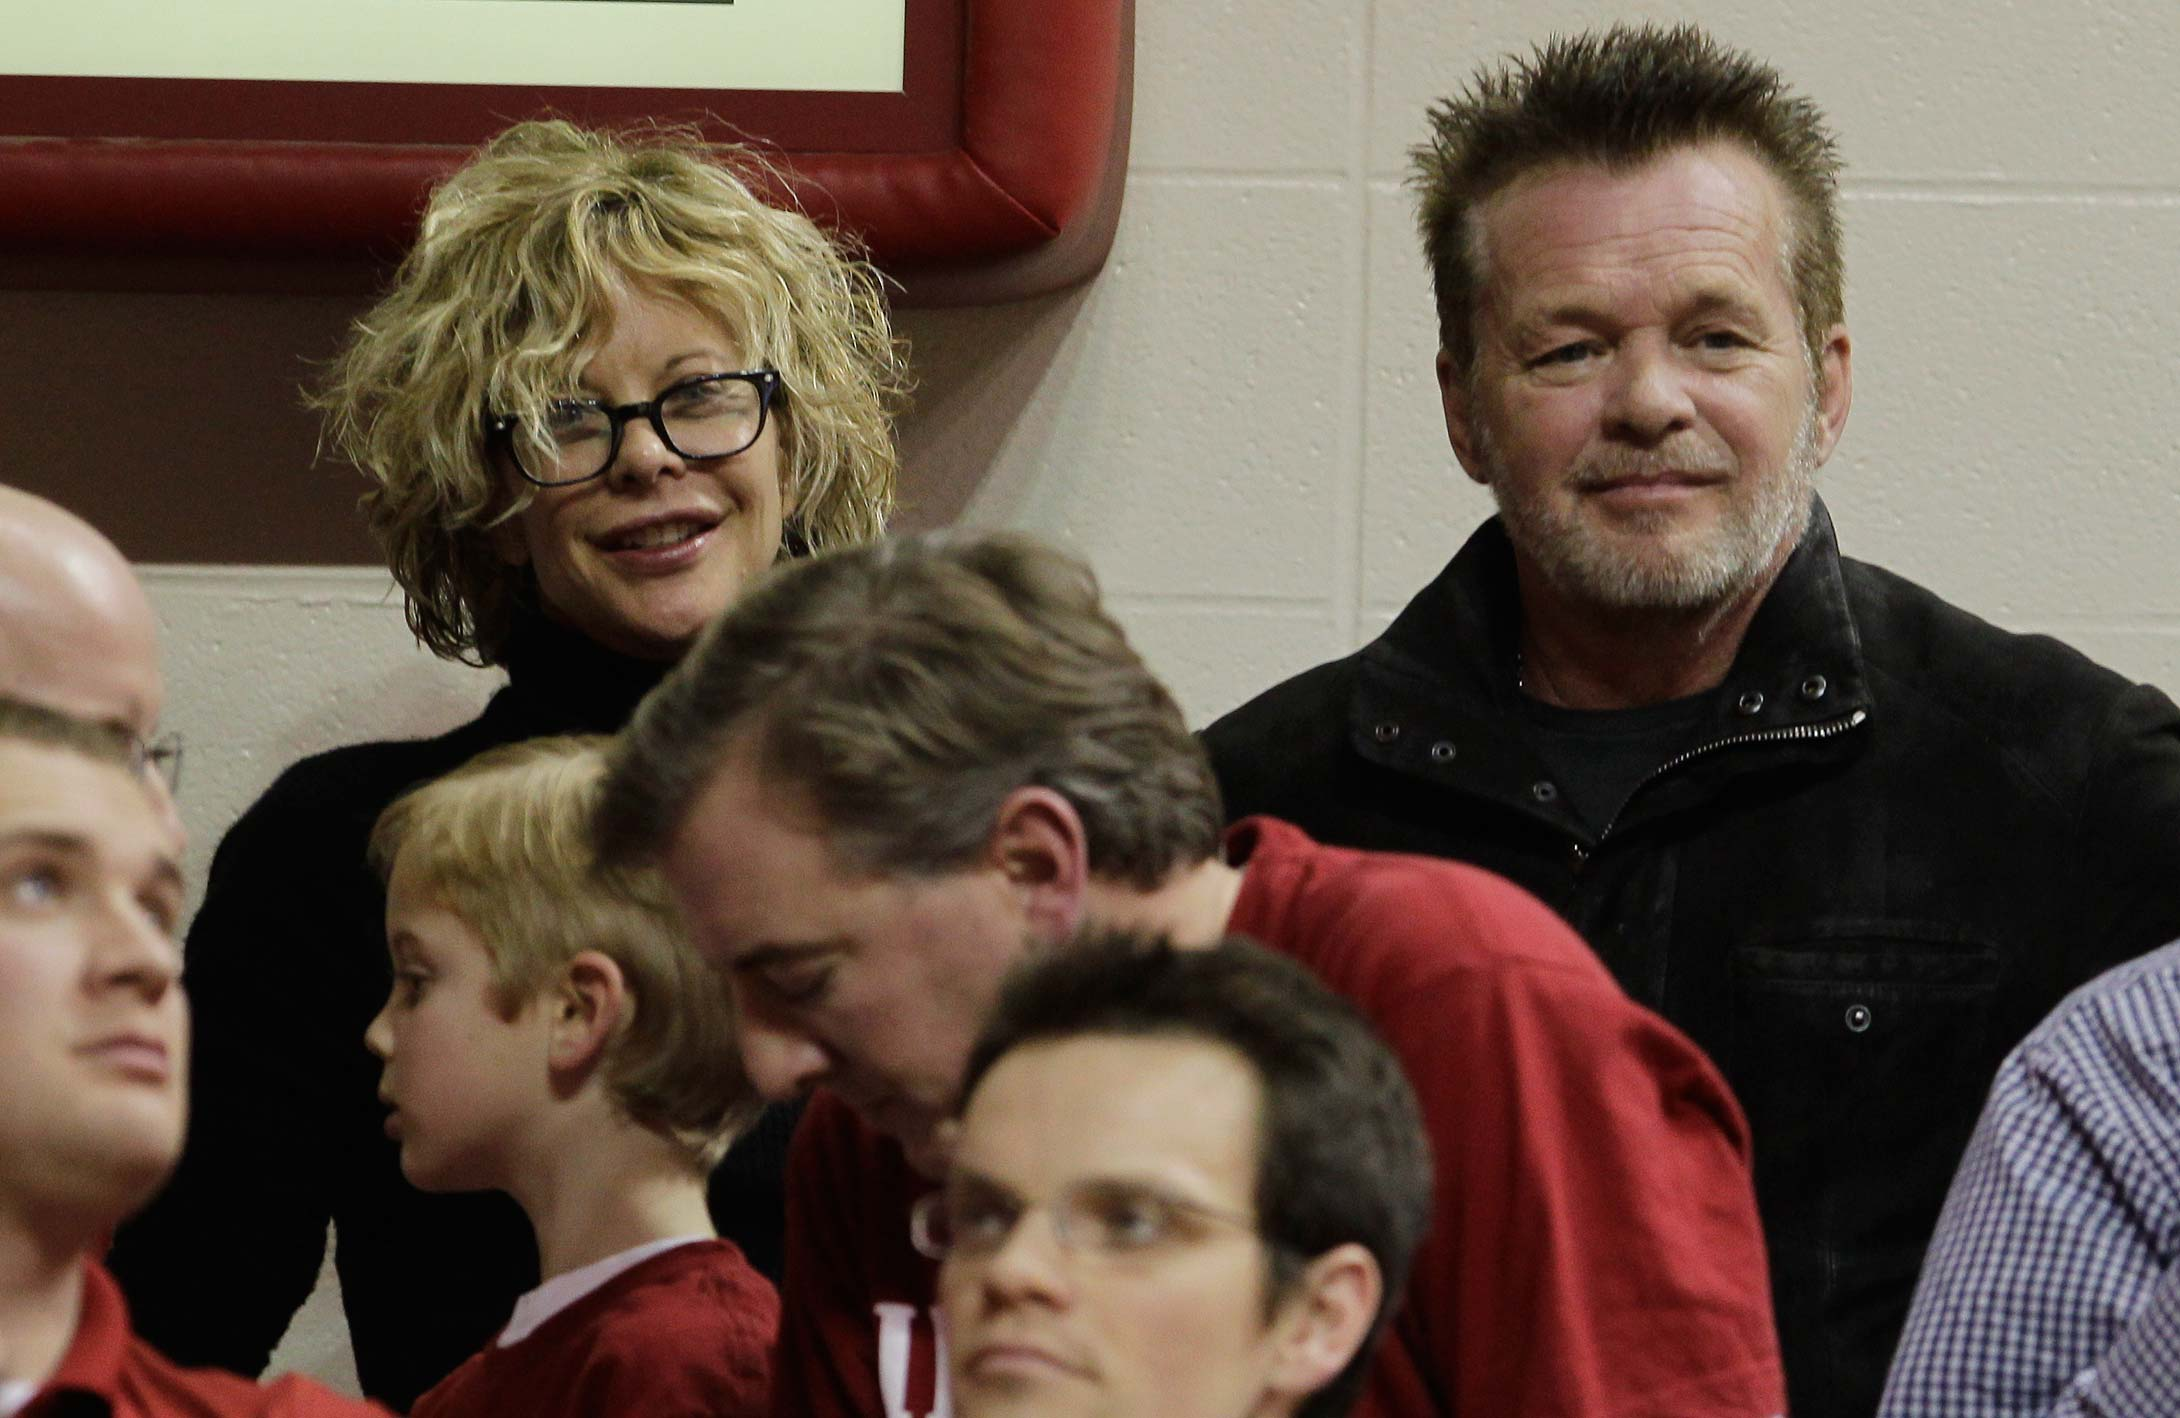 Meg Ryan and John Mellencamp during a 2011 game between Indiana and Ohio State in Bloomington, Ind.